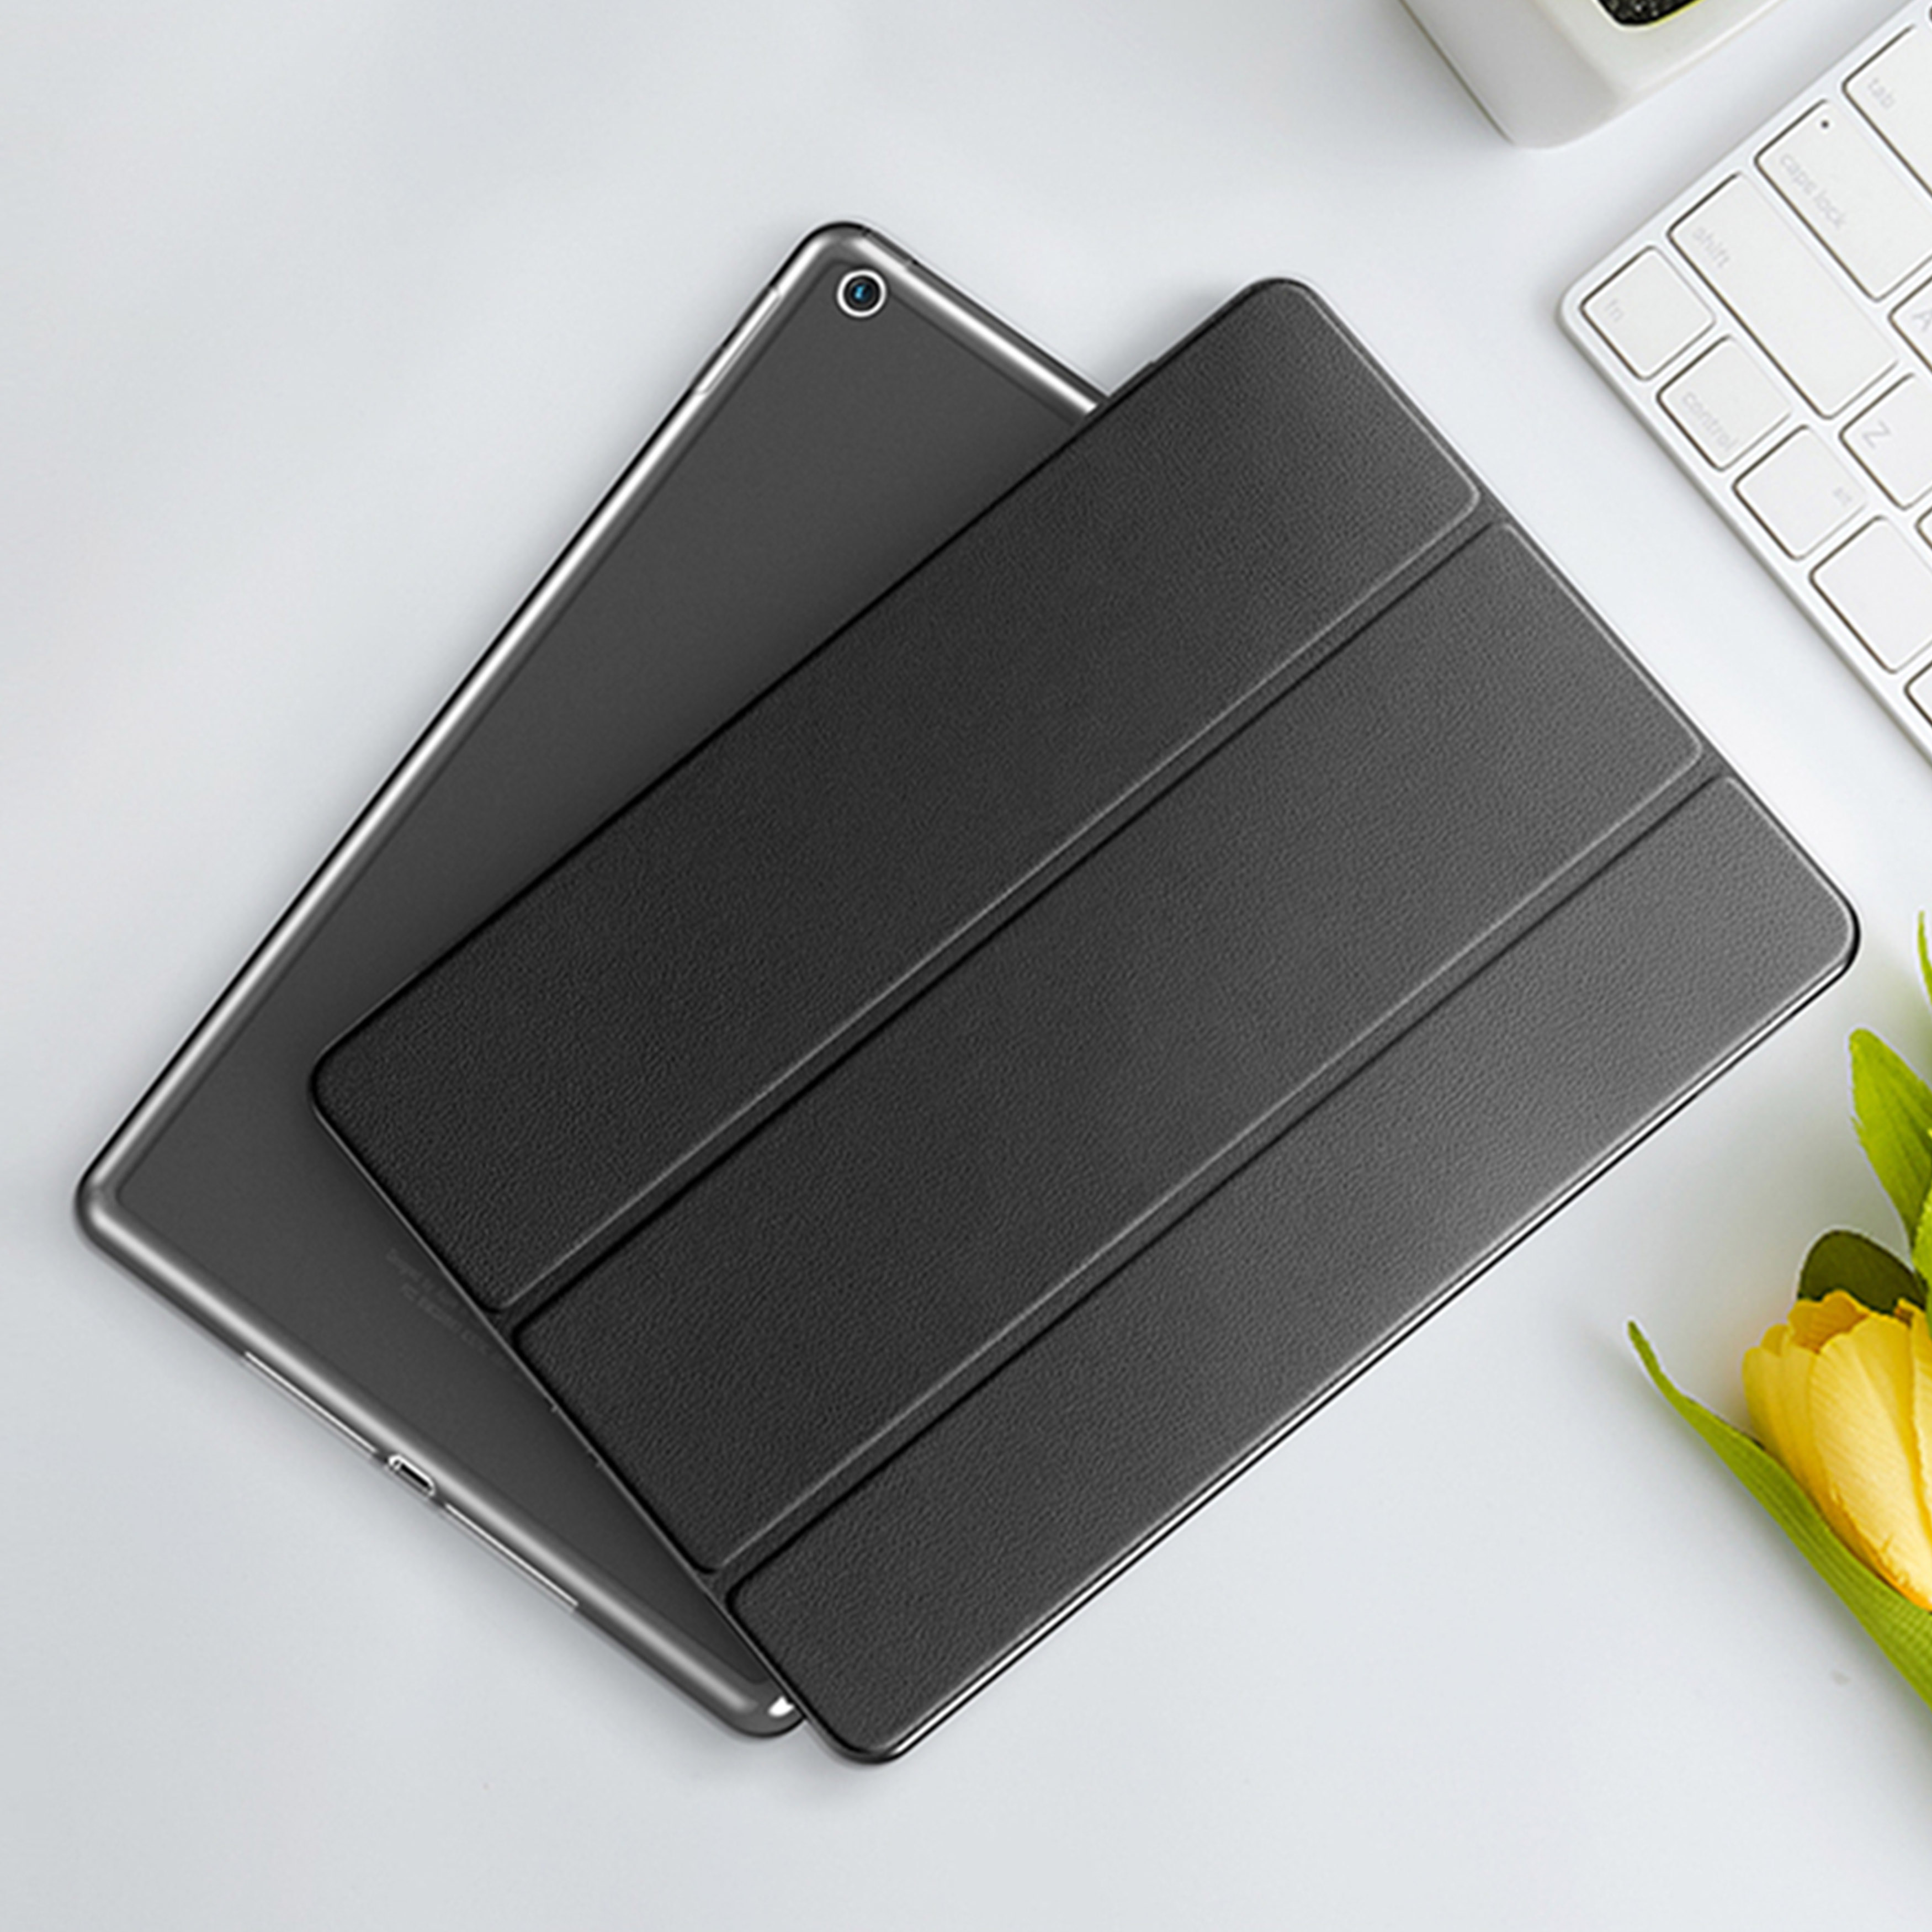 Magnetic Case For Samsung Galaxy Tab A 8.0 P200 P205 2019 8'' Case Flip Tablet Cover For TAB A 8 2019 Leather Smart Stand Shell